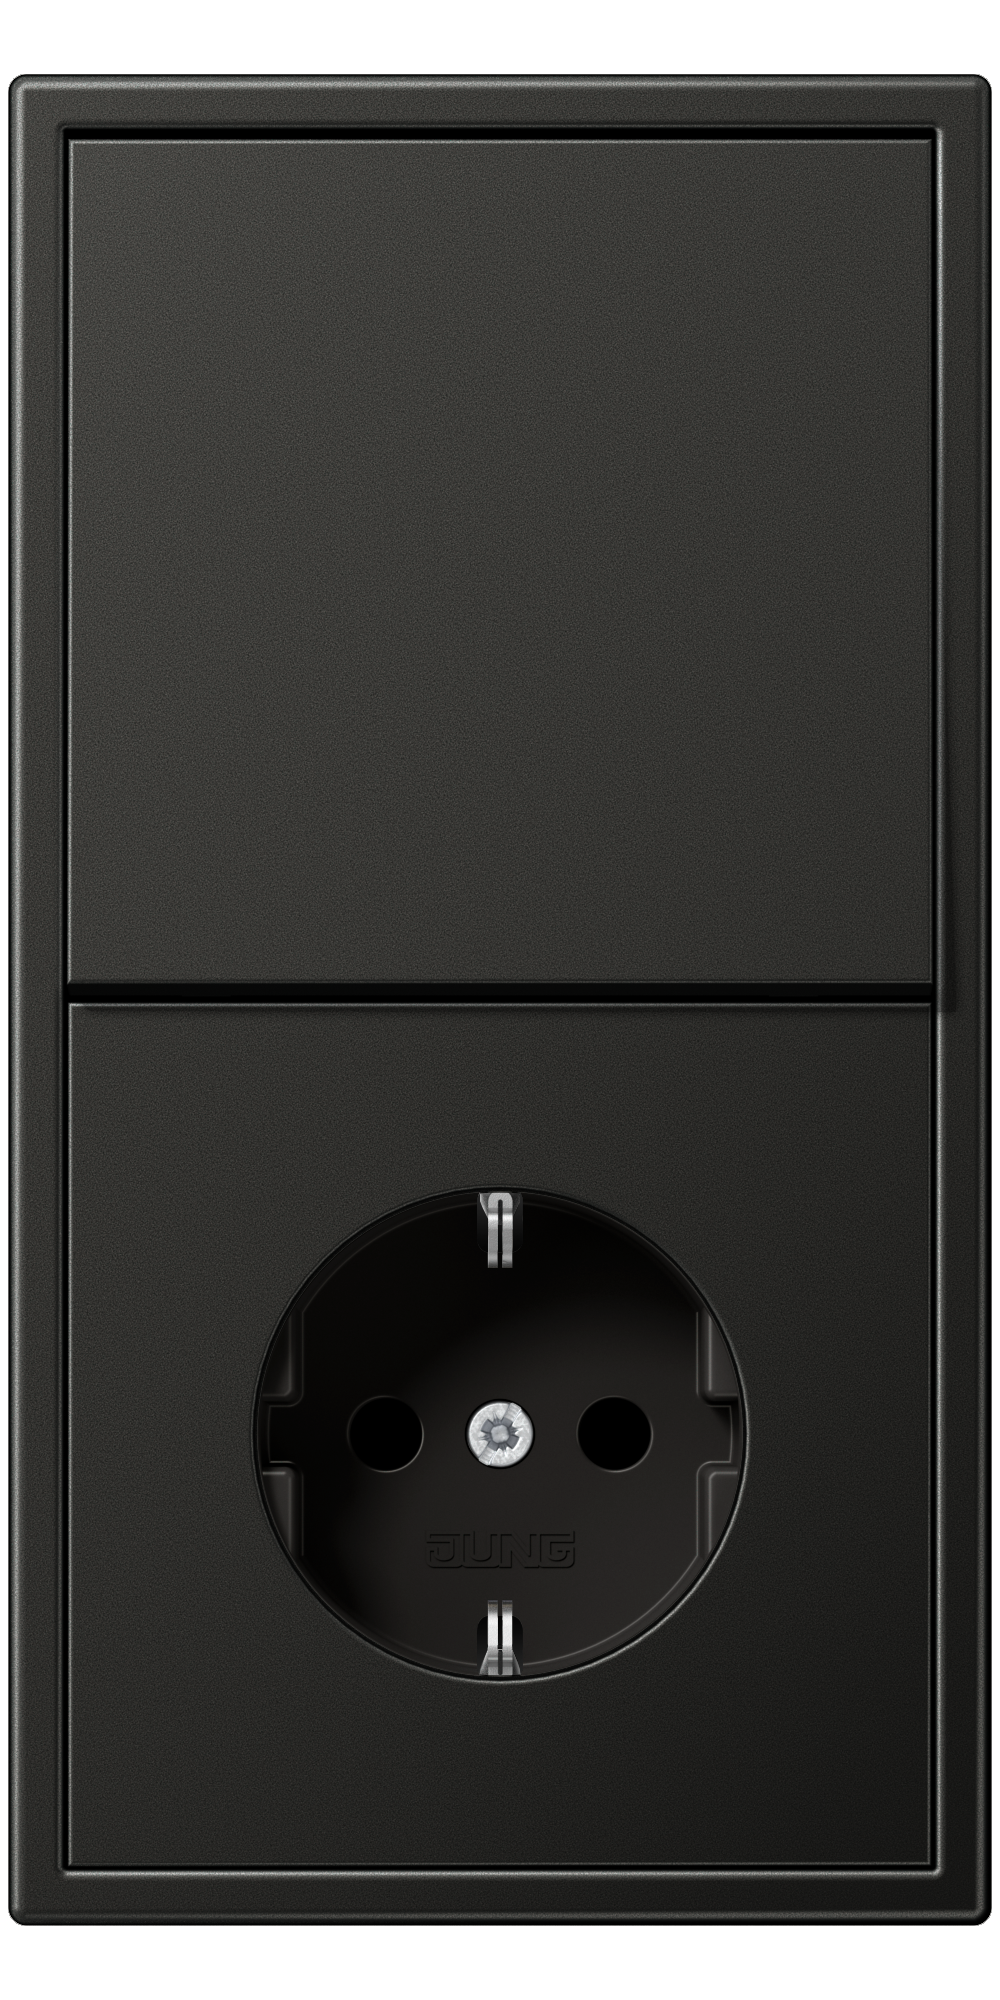 JUNG_LS990_anthracite_switch-socket